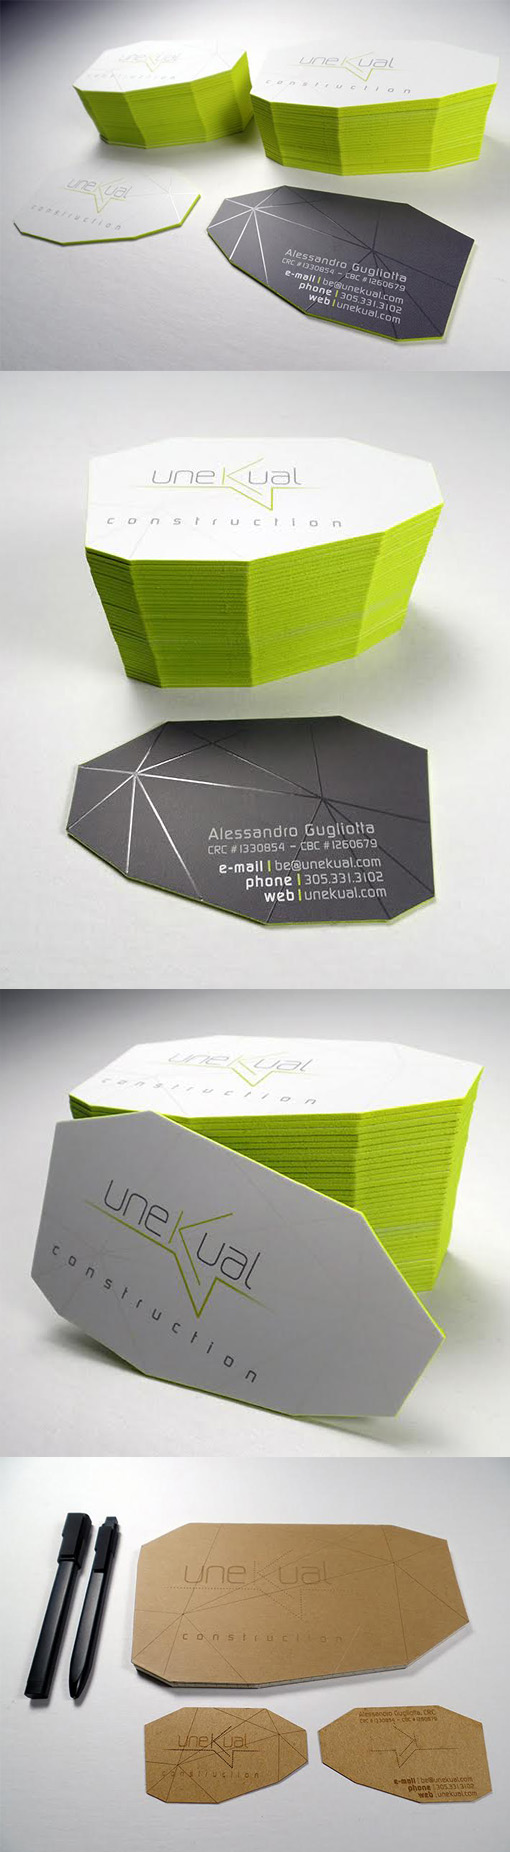 Unusual Faceted Die Cut Business Card With Lime Green Edge Painting ...